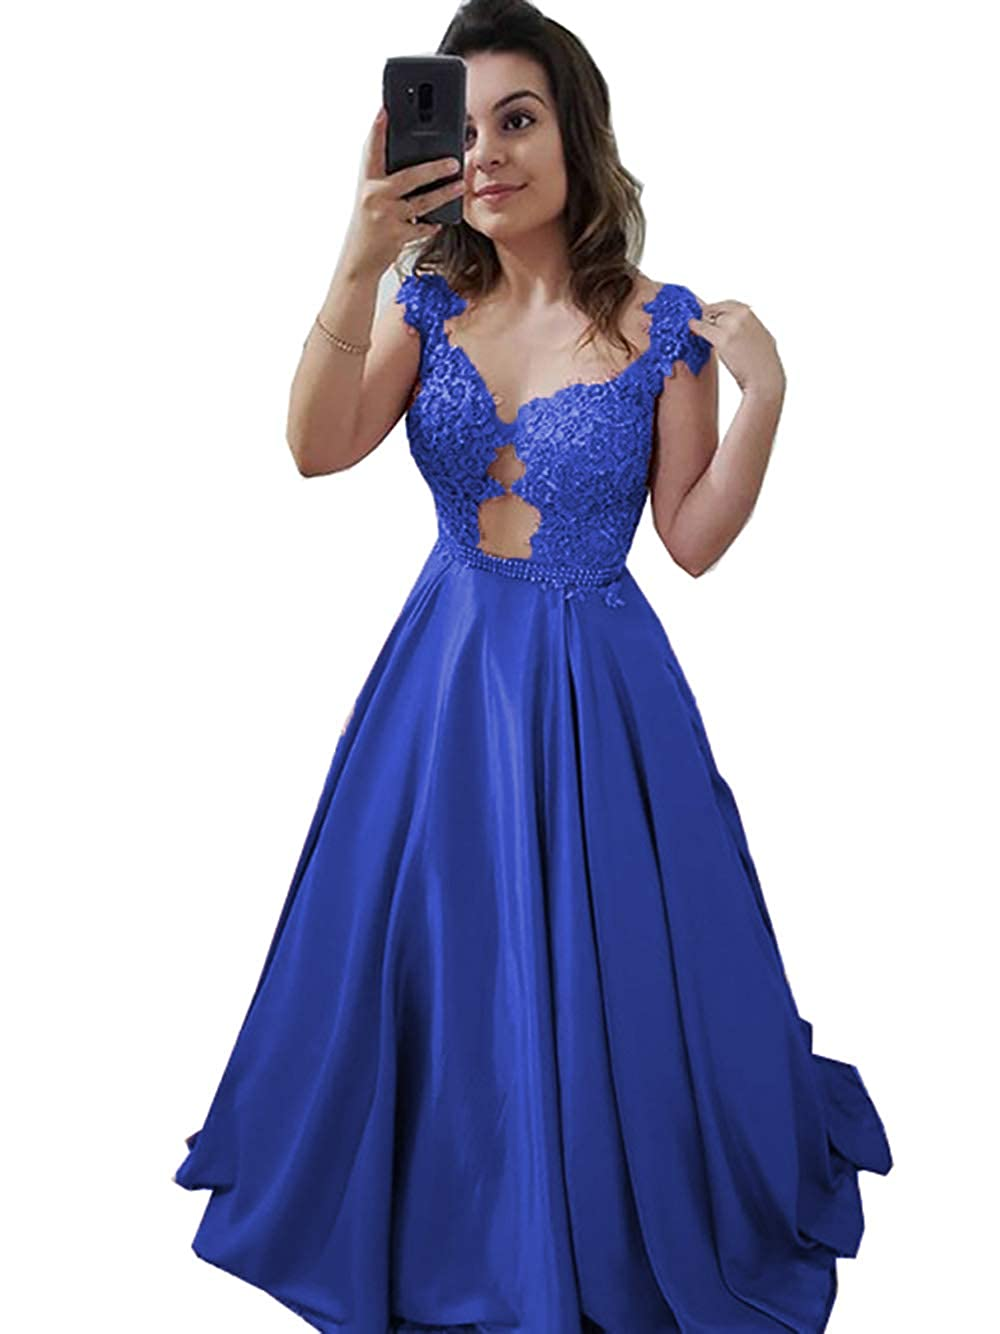 Royal bluee YHFDRESS Women's Beaded Lace Applique Prom Dresses Illusion Back Evening Dresses A line Formal Dresses